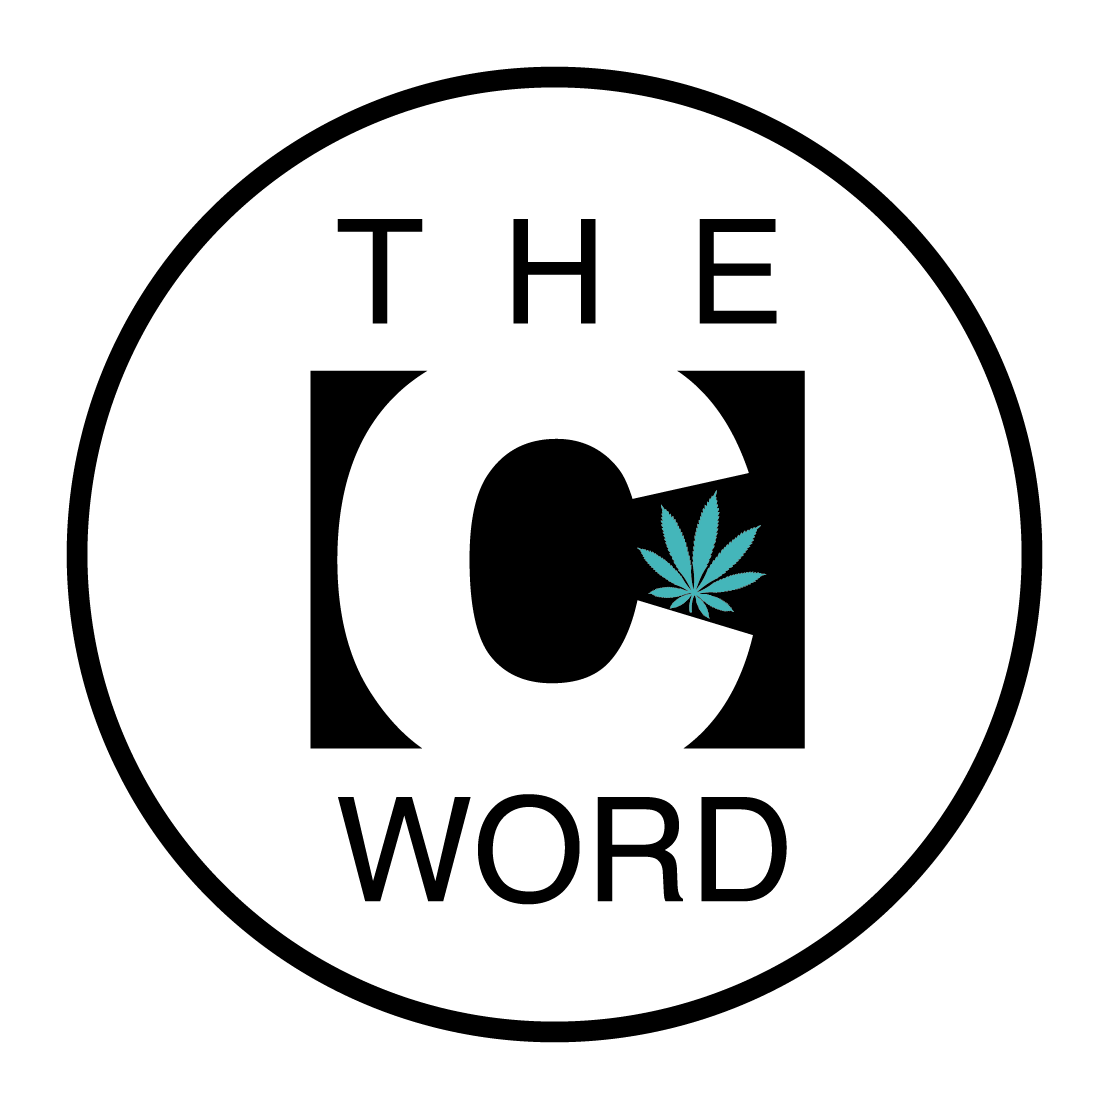 SEO for CBD Oil, SEO for CBD Oil, The C* Word, The C* Word